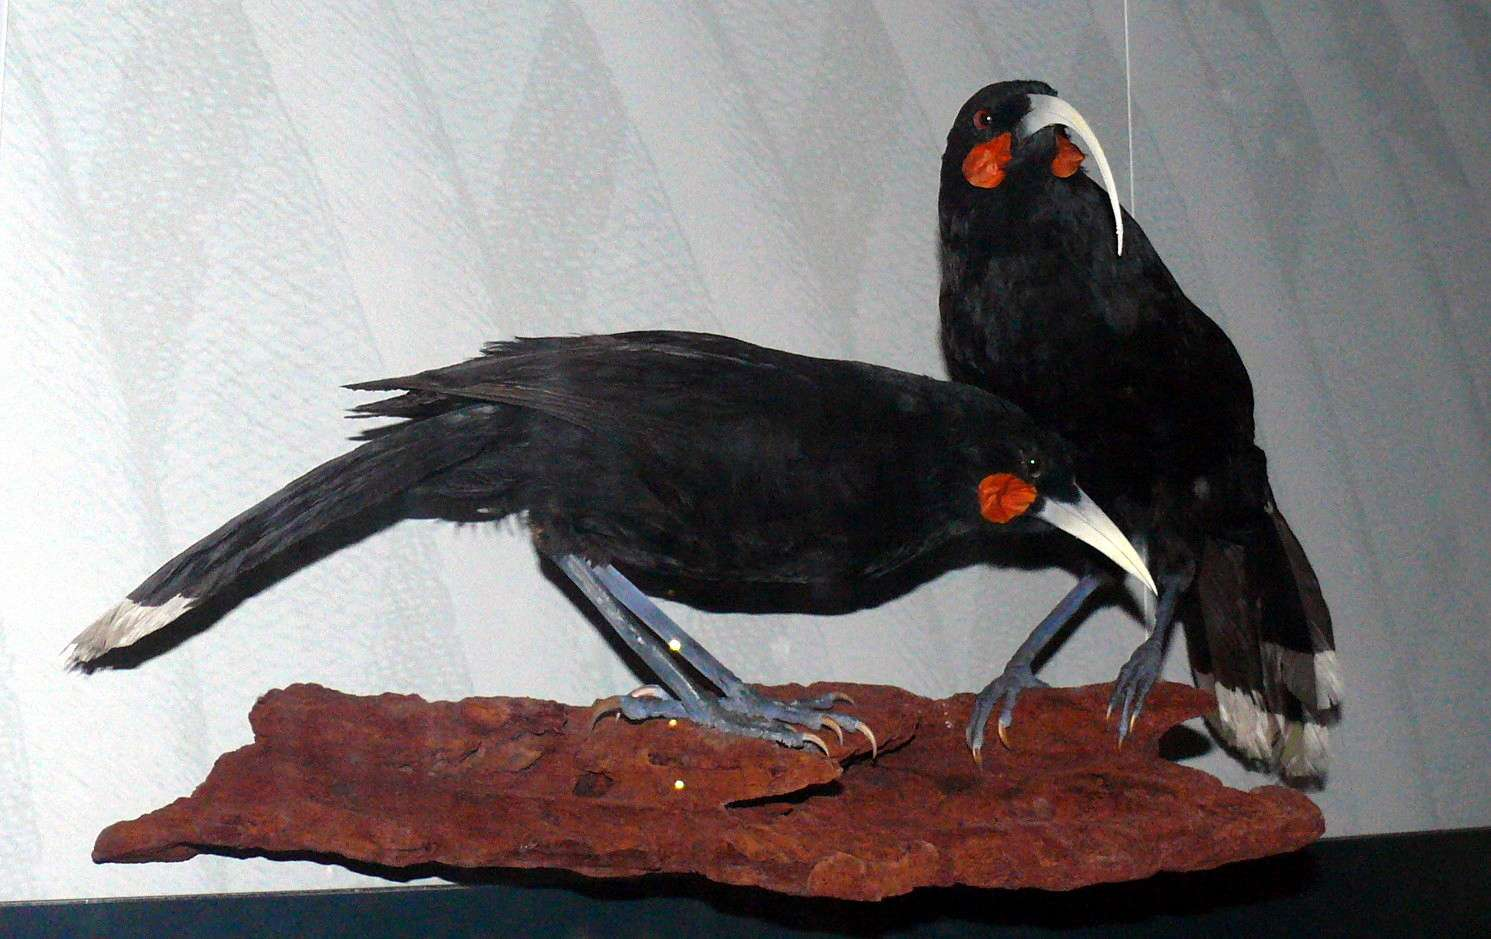 somewhat large black birds with black legs, with white tipped tail feathers, red spots on cheeks and narrow white beaks, one has a sickle shaped curve to beak and on has a shorter straight beak, mounted birds on rock